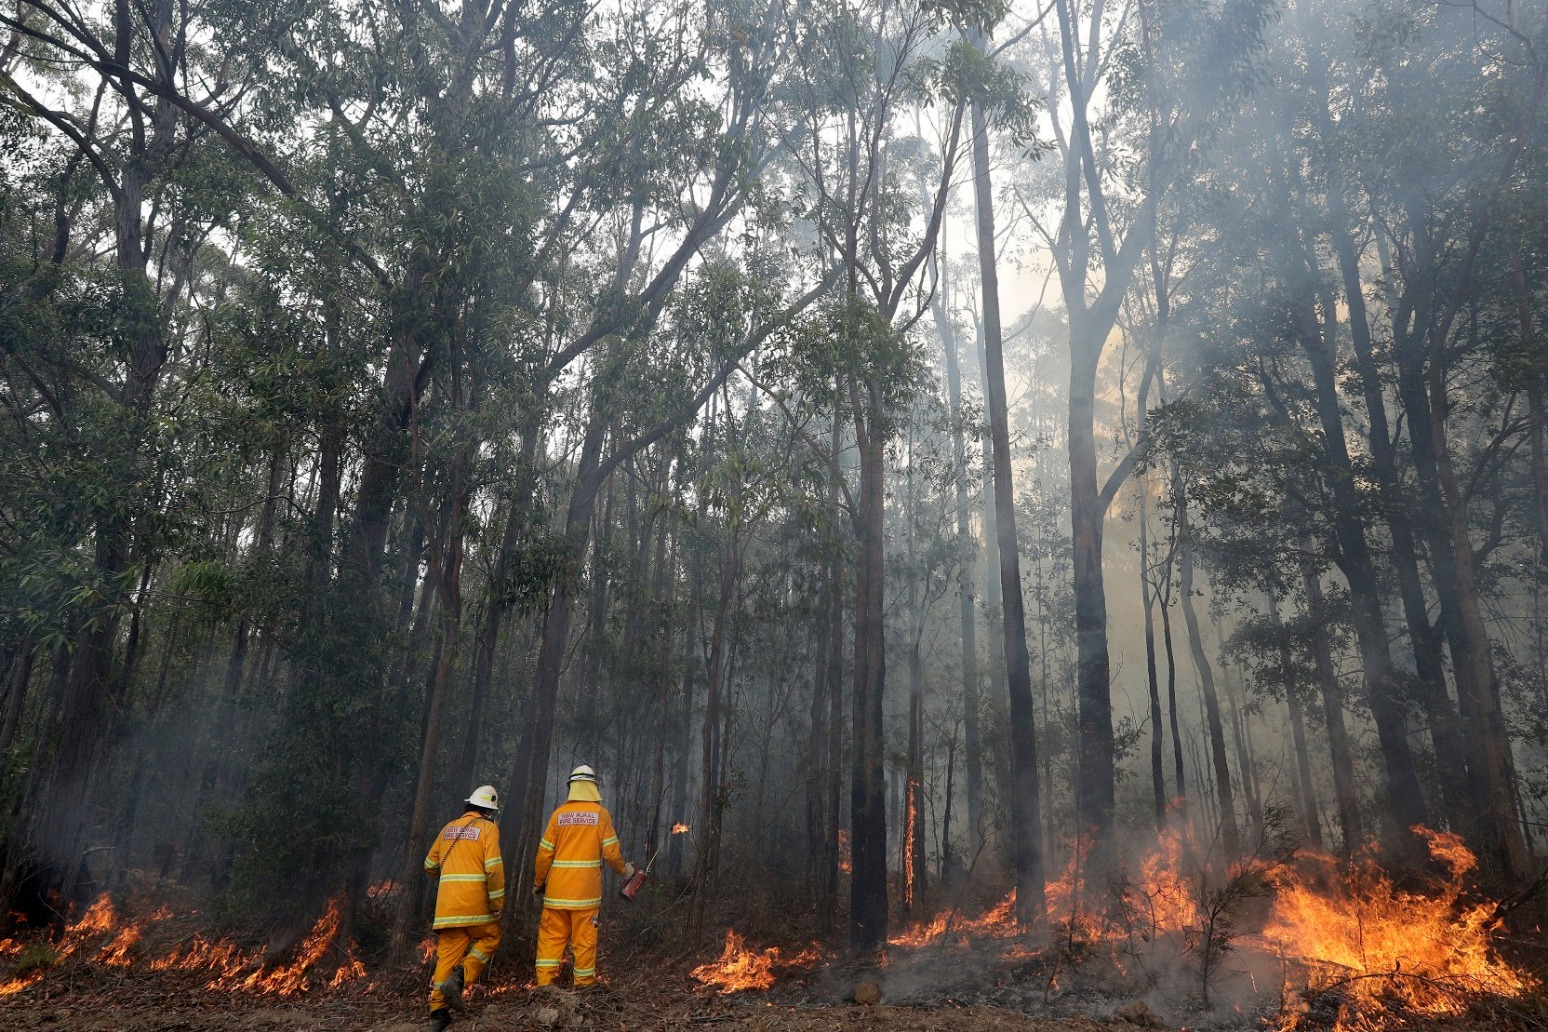 STORMS BRING RELIEF AND DANGER TO AUSTRALIAN WILDFIRES